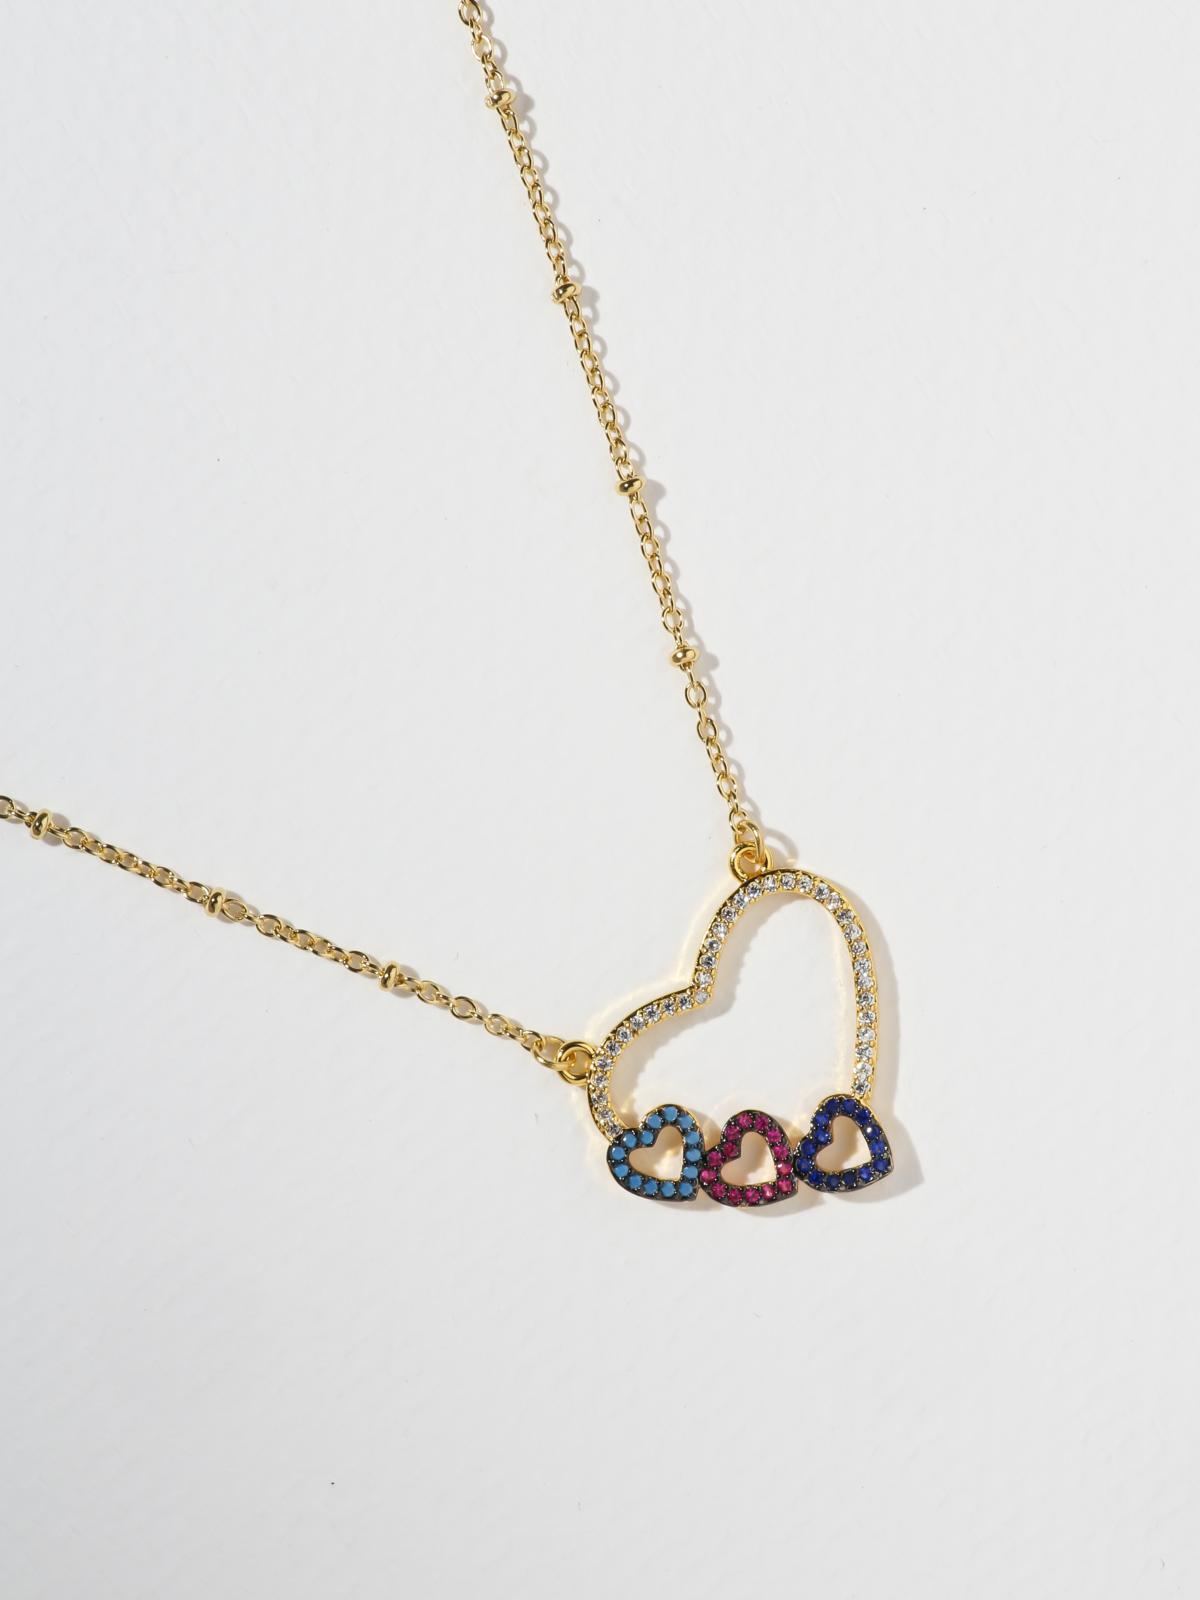 The Crush Necklace